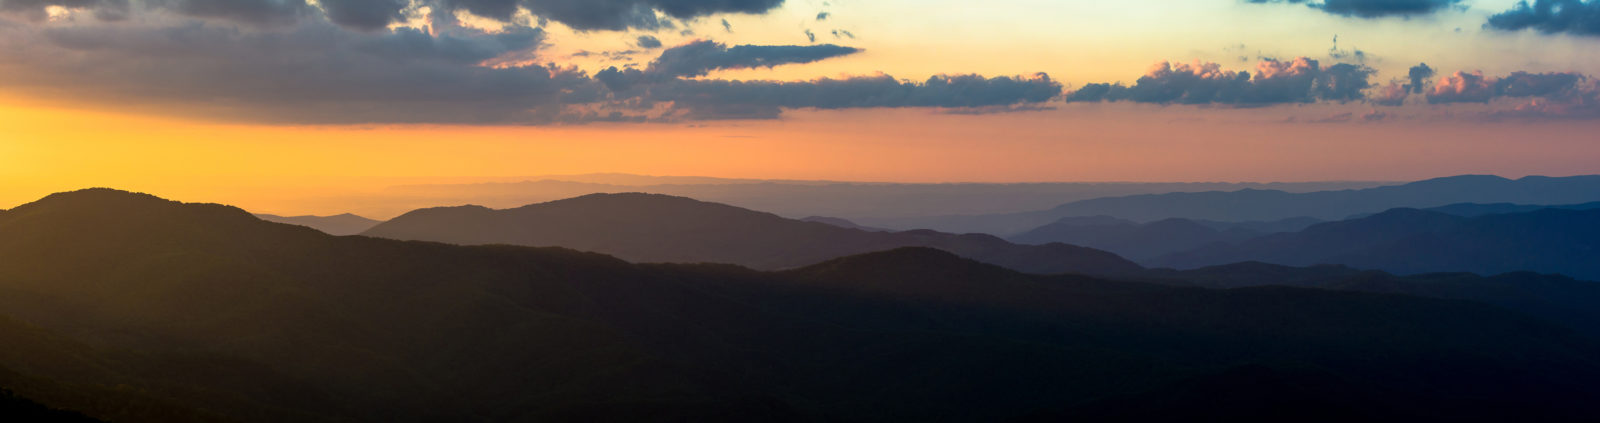 Sunset in the Roan Highlands-Panorama